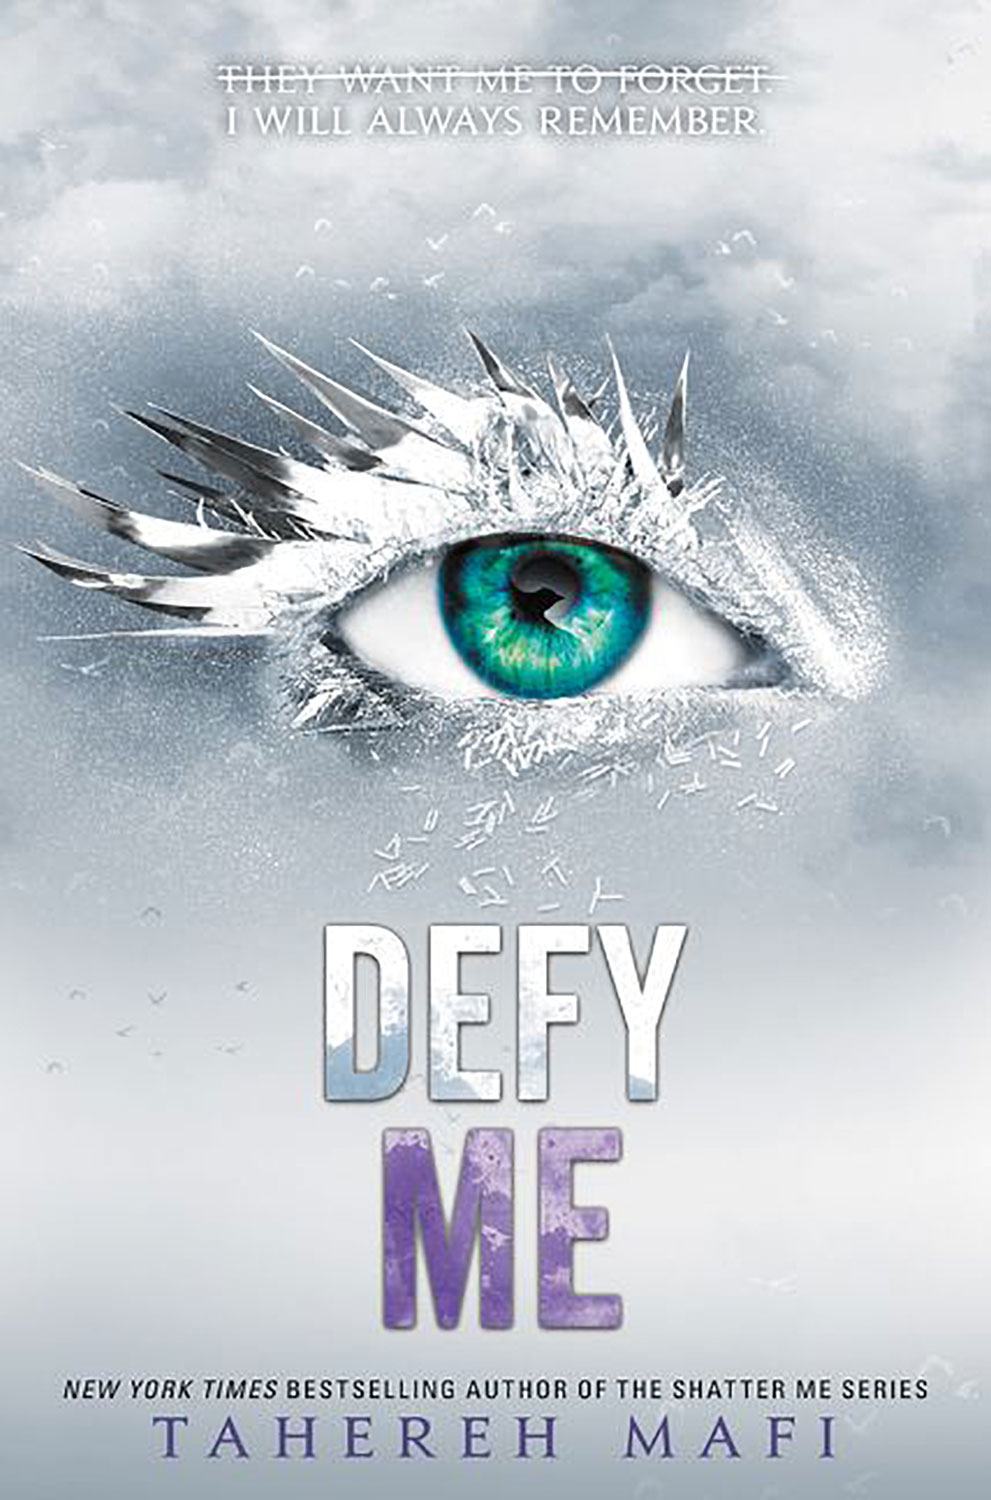 Defy-me-book-cover